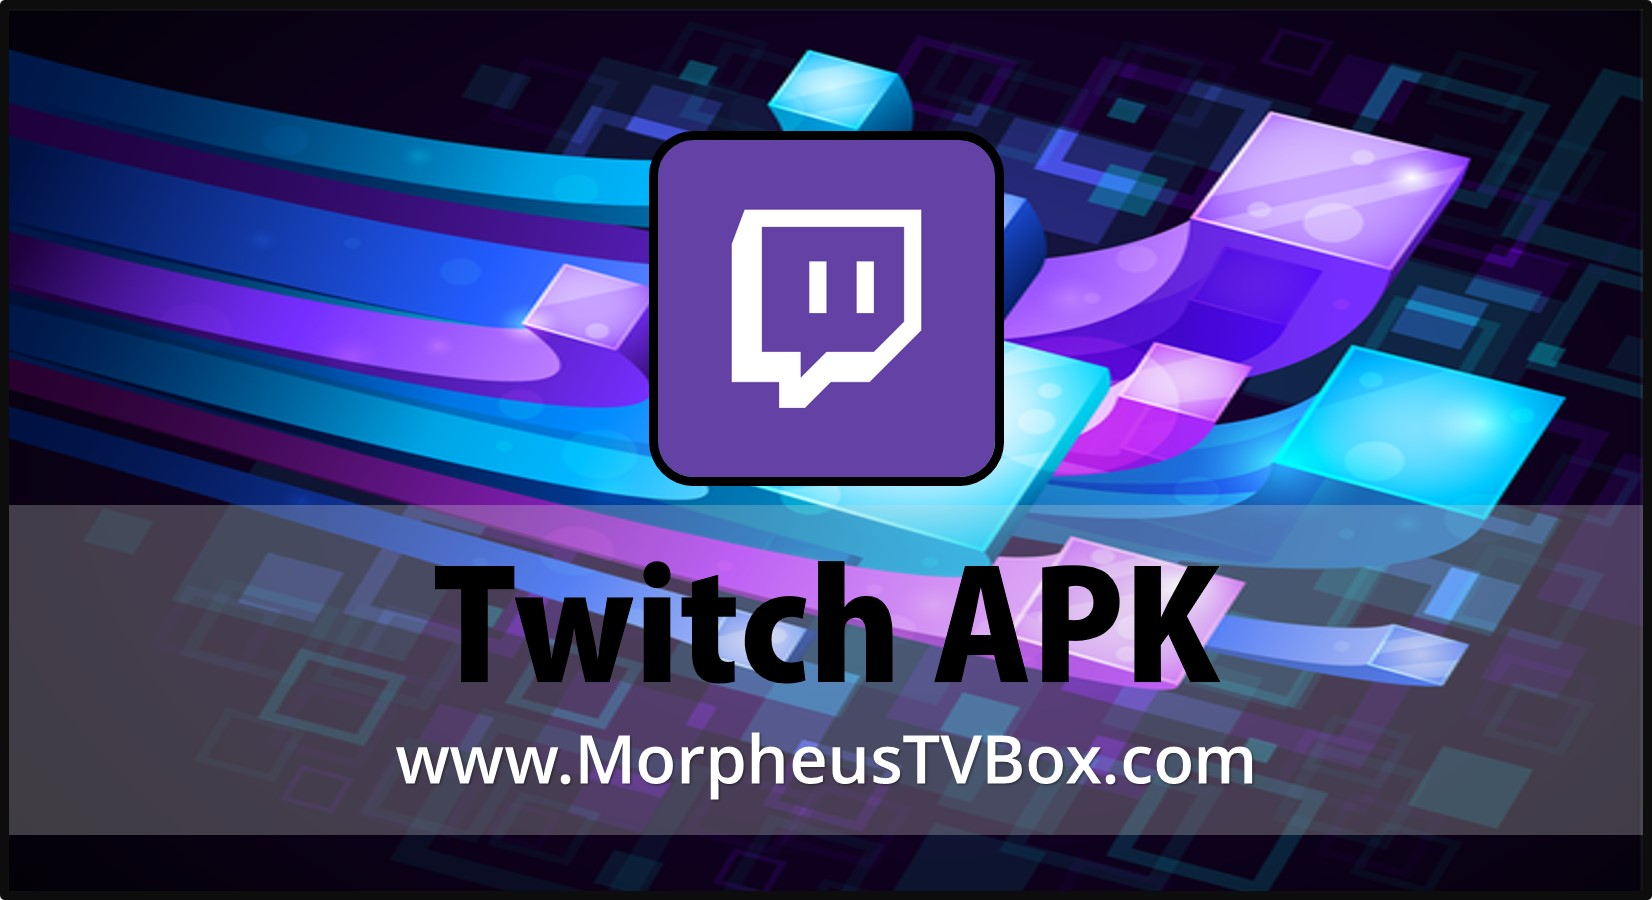 Twitch Apk 8.2.1 Free Download for any Android Device [32.27MB]